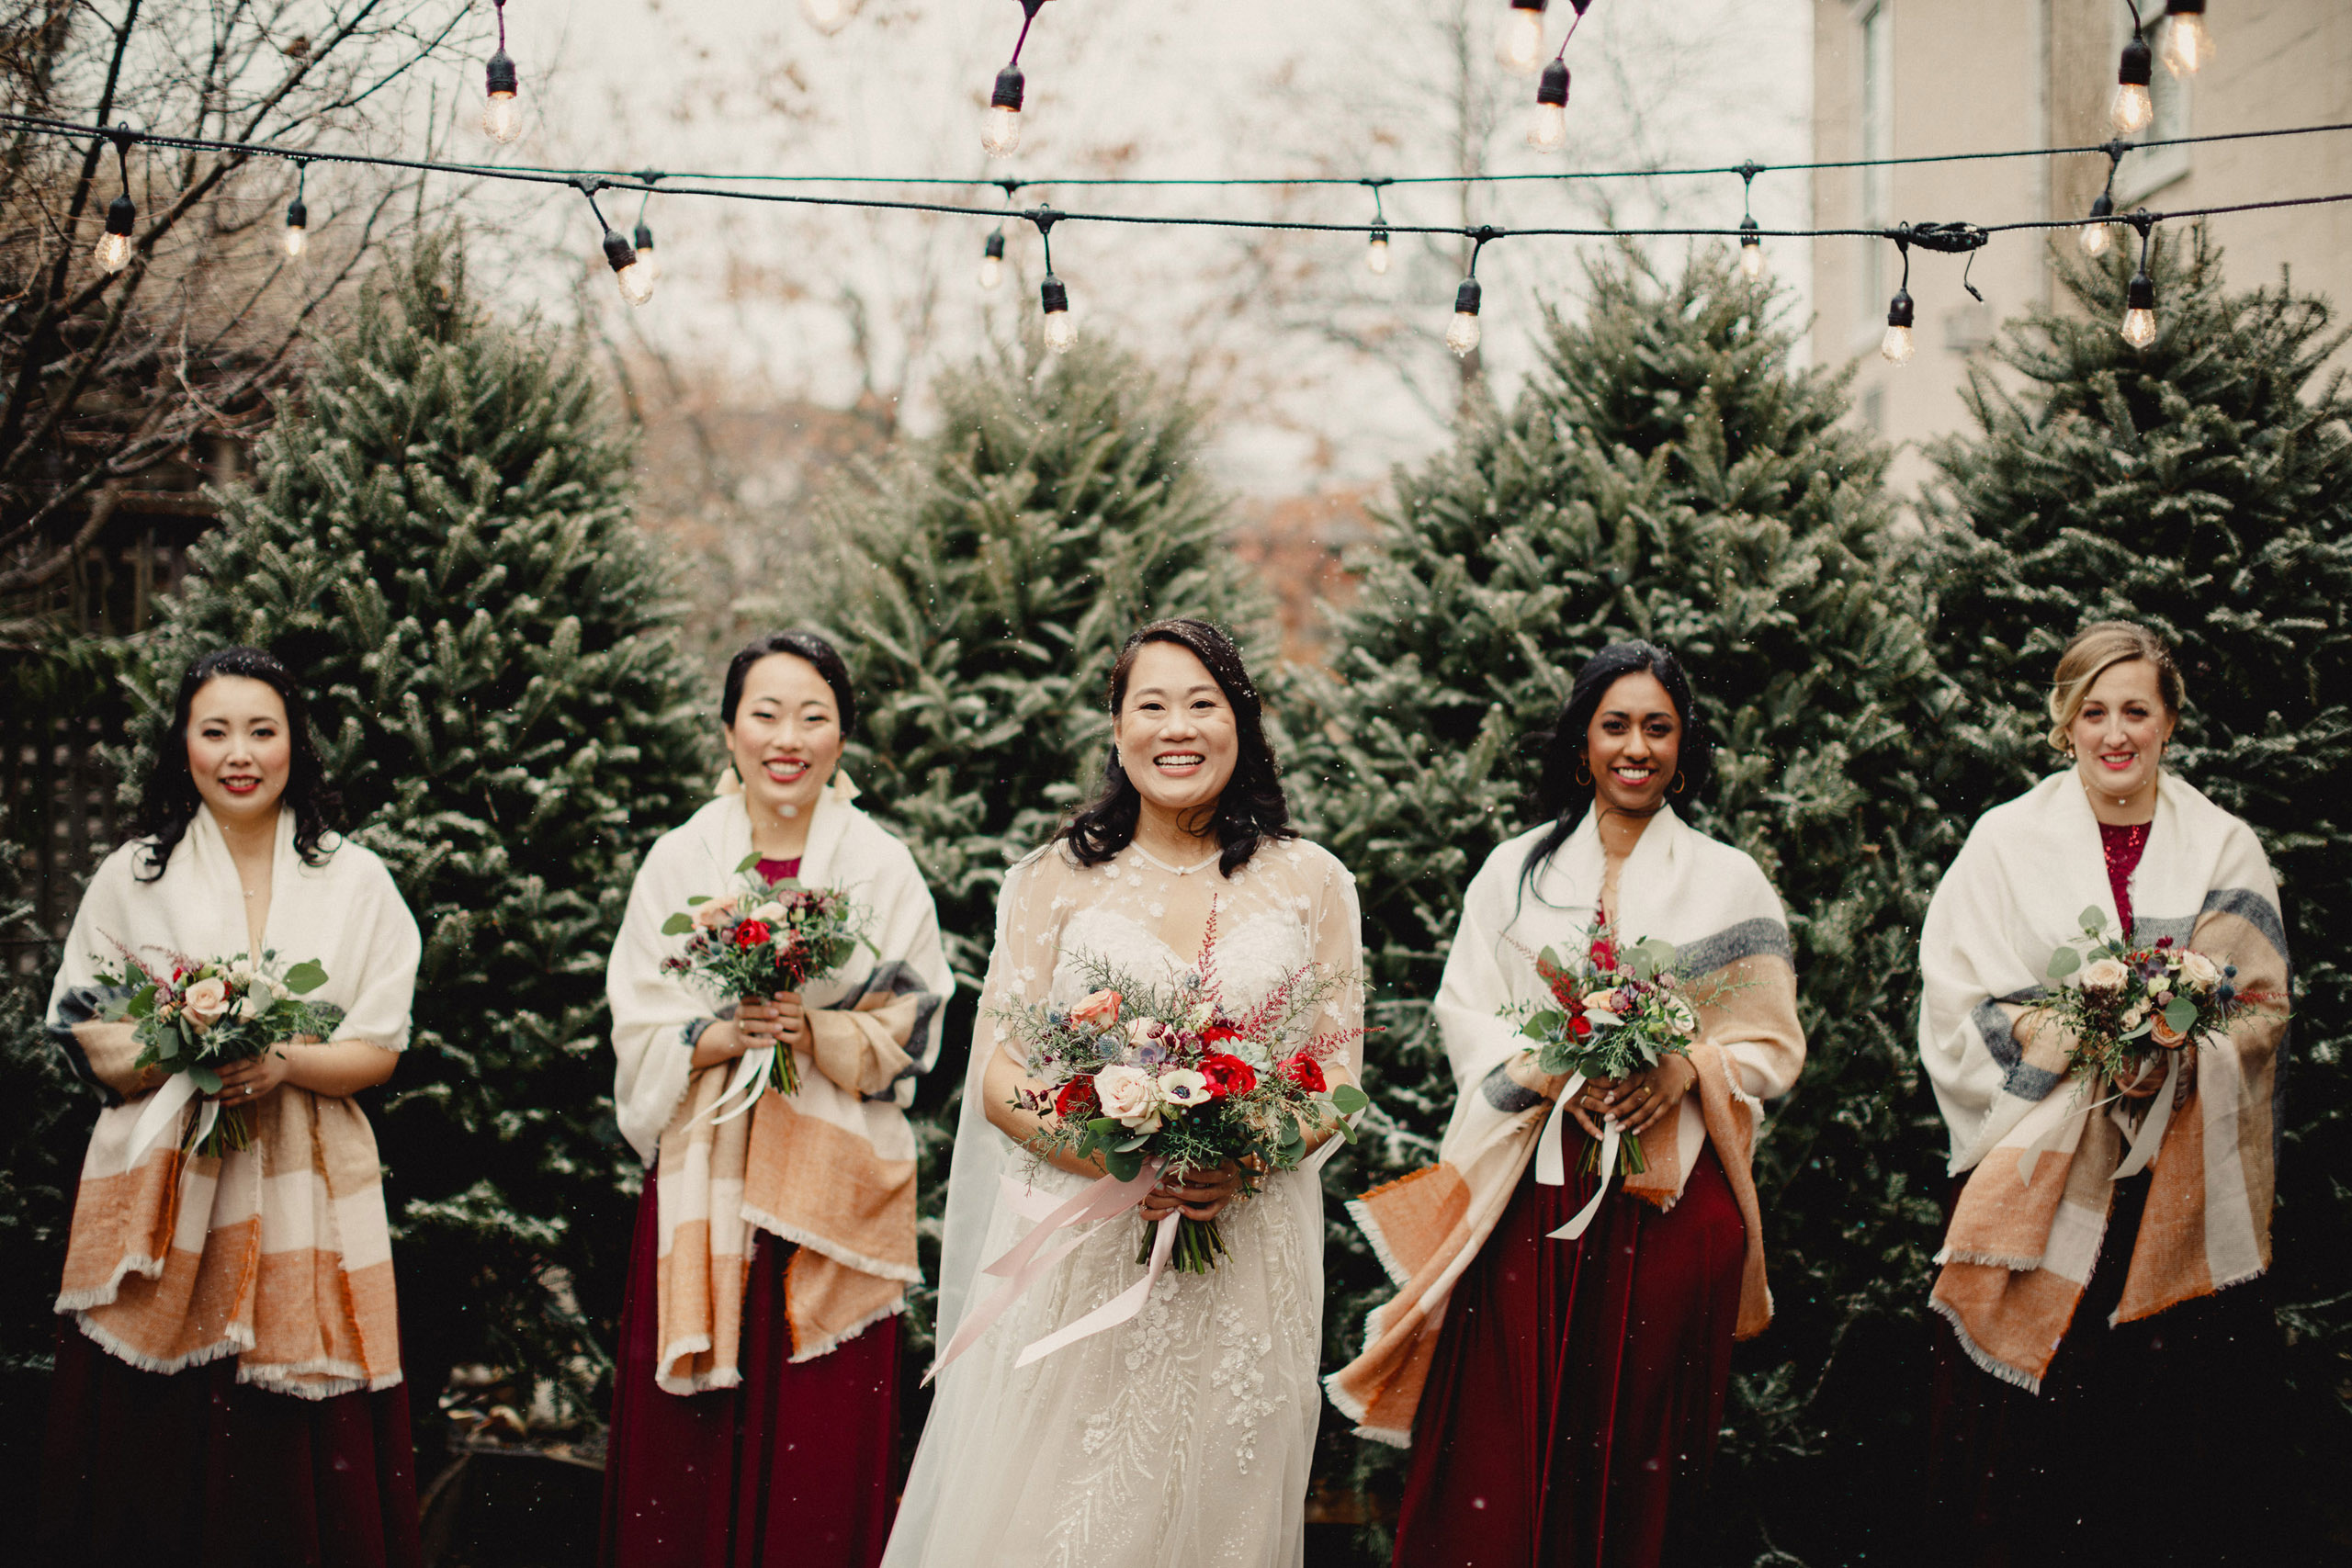 bridemaids group winter wedding snow inn on the twenty outdoor niagara photographer